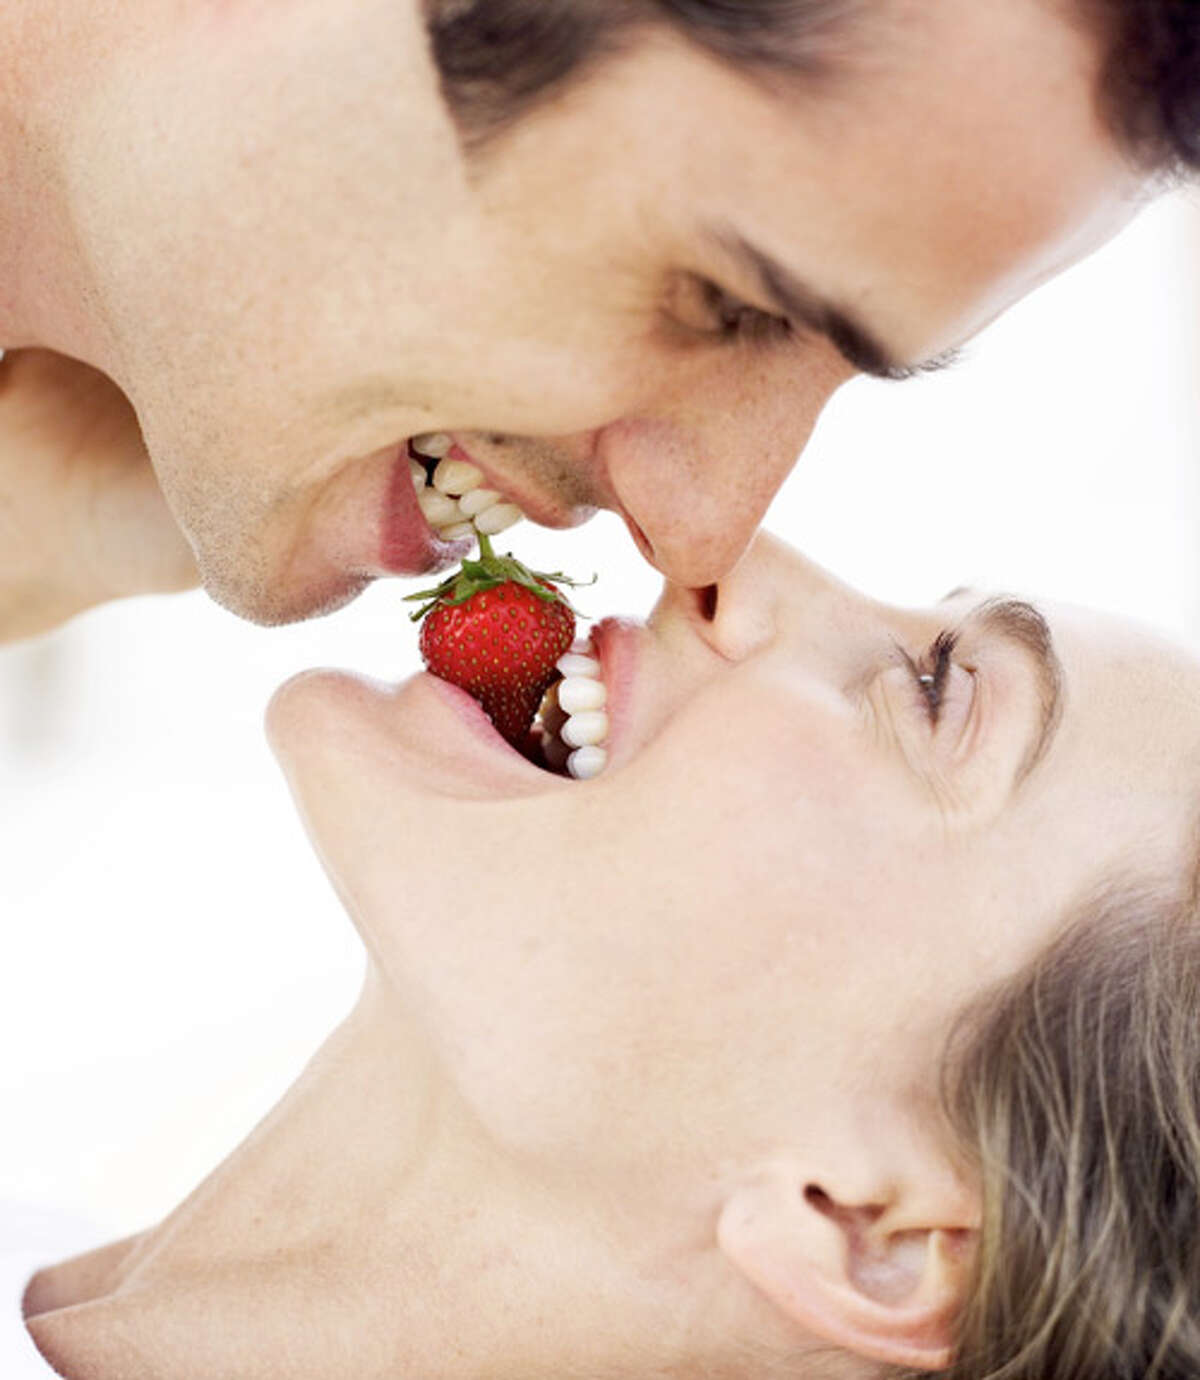 Food and sex: you need 'em both, you want 'em both-and, as it turns out, they're closely linked. A poor diet can lead to a lackluster sex life, while some foods have the power to make you feel sexier or prime your body for some mind-blowing booty. A healthy balance of vitamins and minerals keeps your endocrine system humming, which in turn regulates the production of the hormones estrogen and testosterone, essential for sexual desire and performance, says Cammi Balleck, PhD, a naturopathic physician and author of Making Happy Happen.